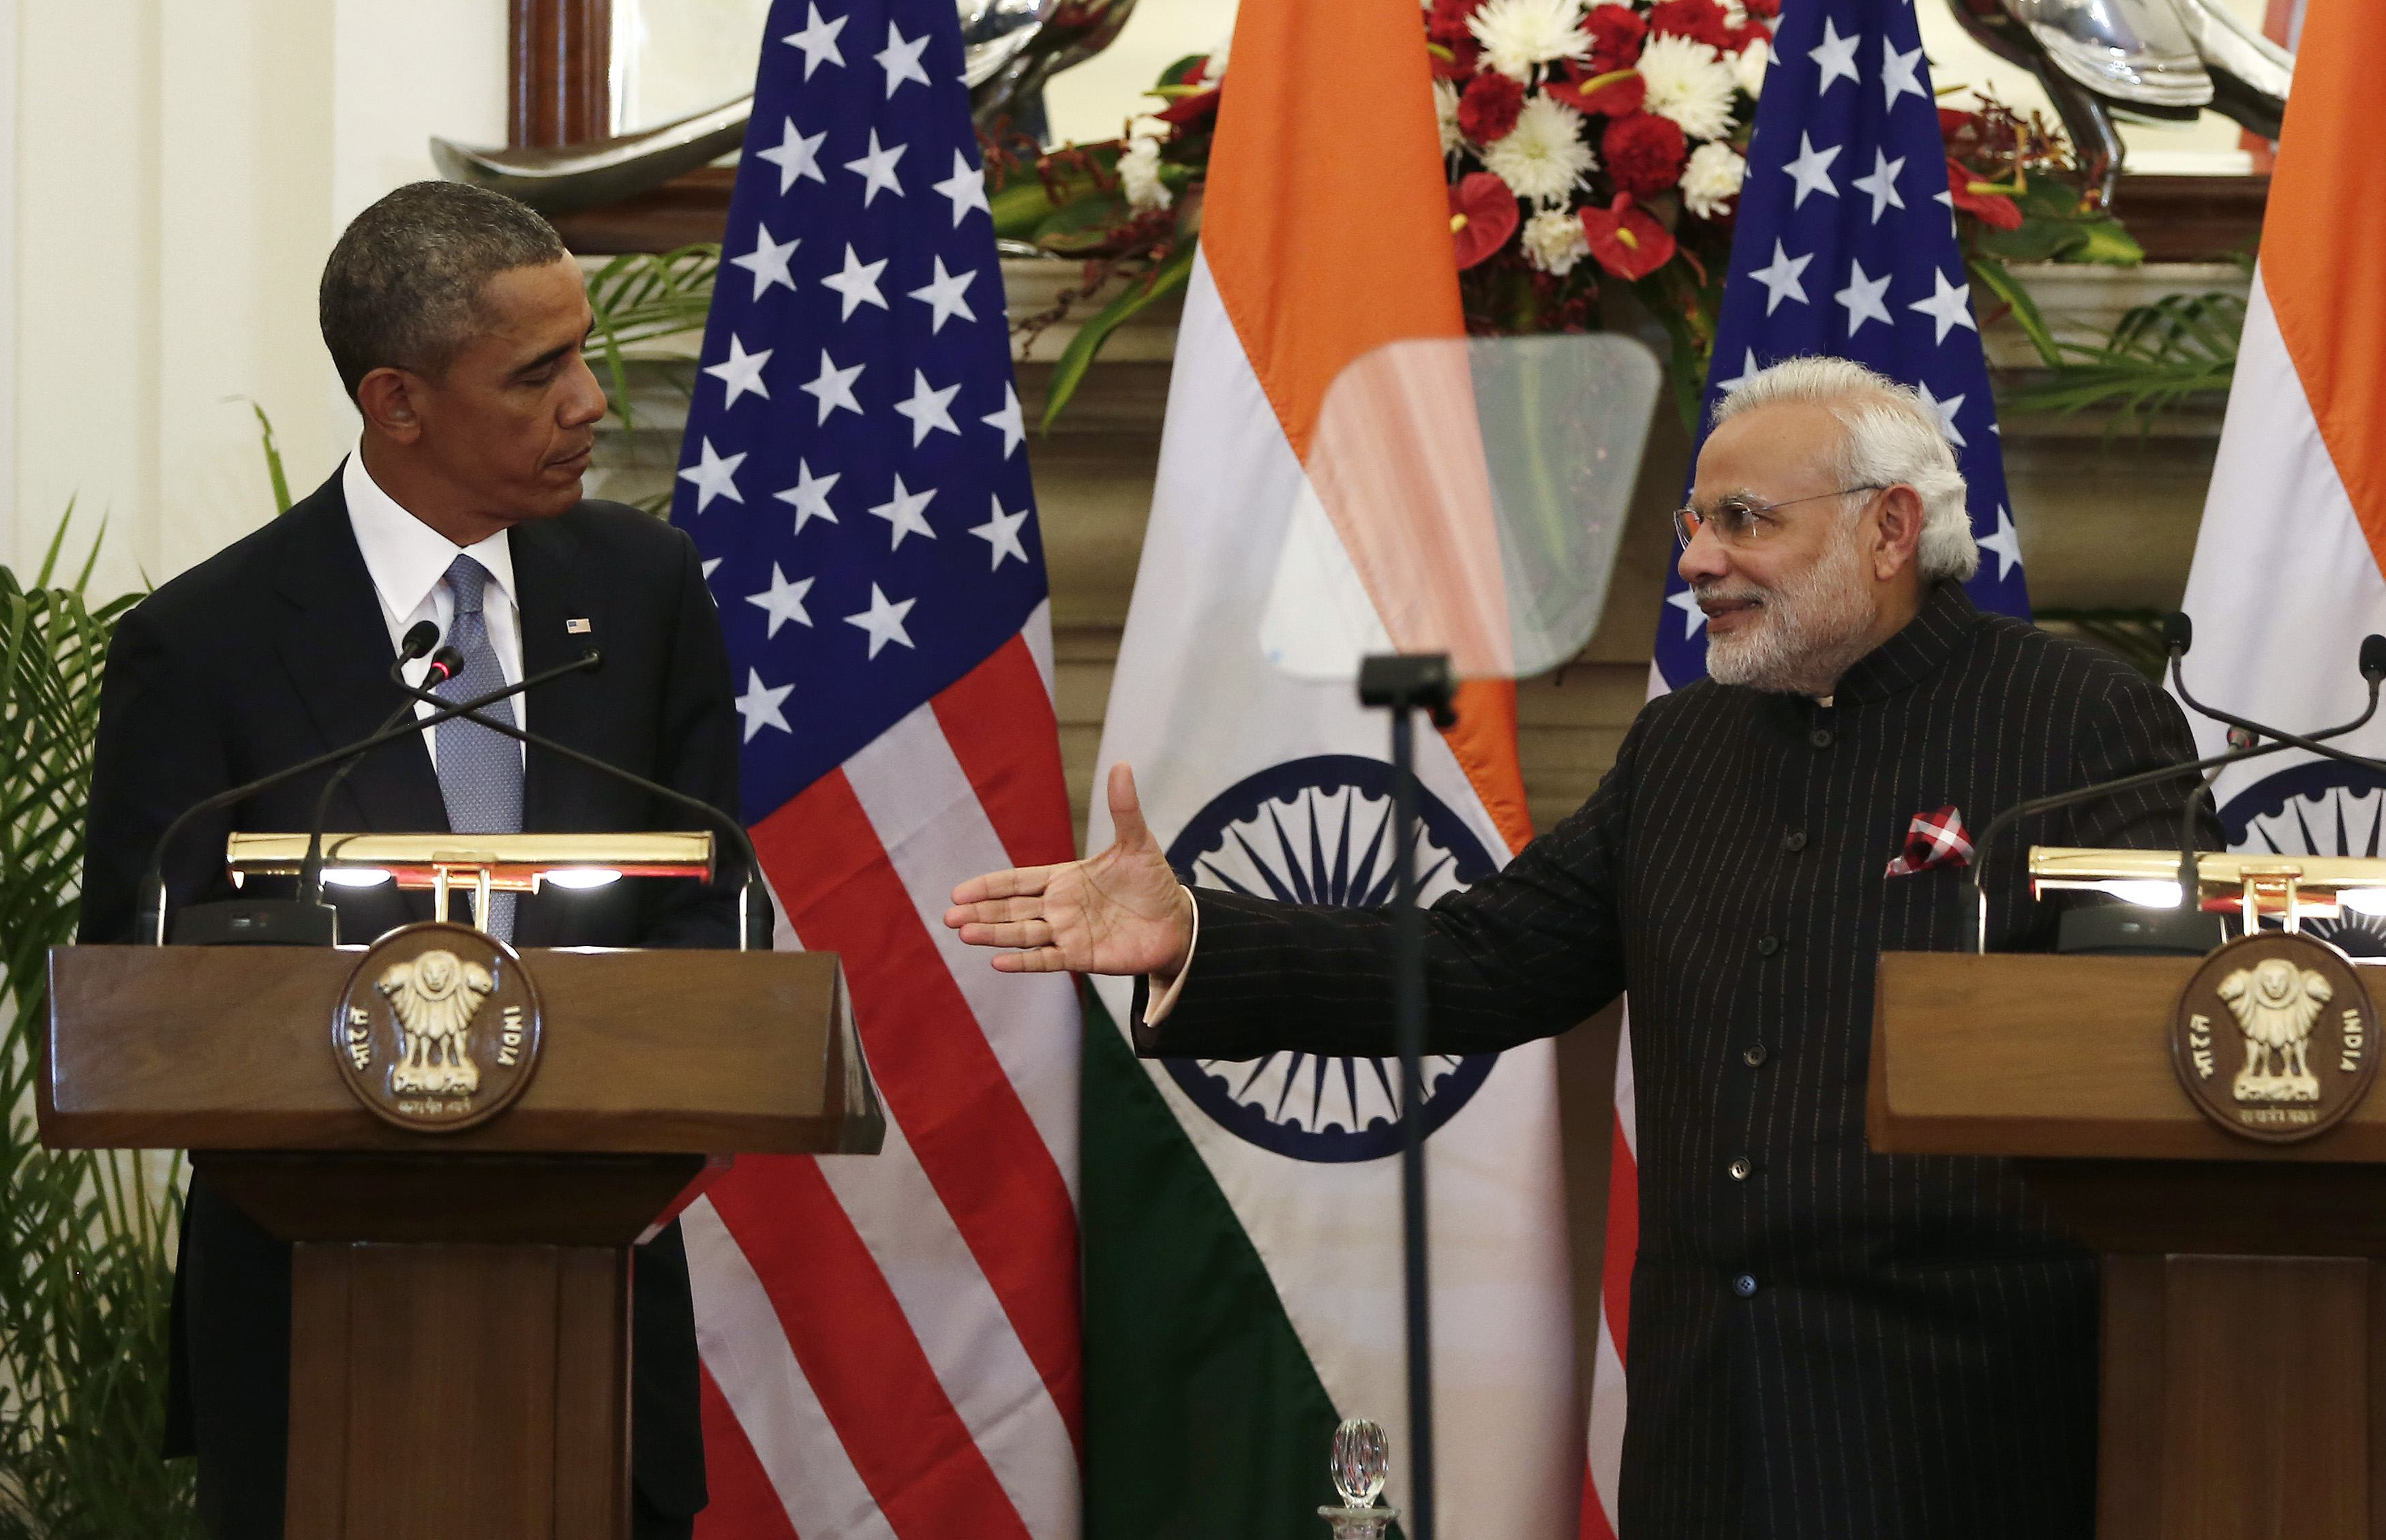 Obama's India visit could yield progress on climate change and solar power